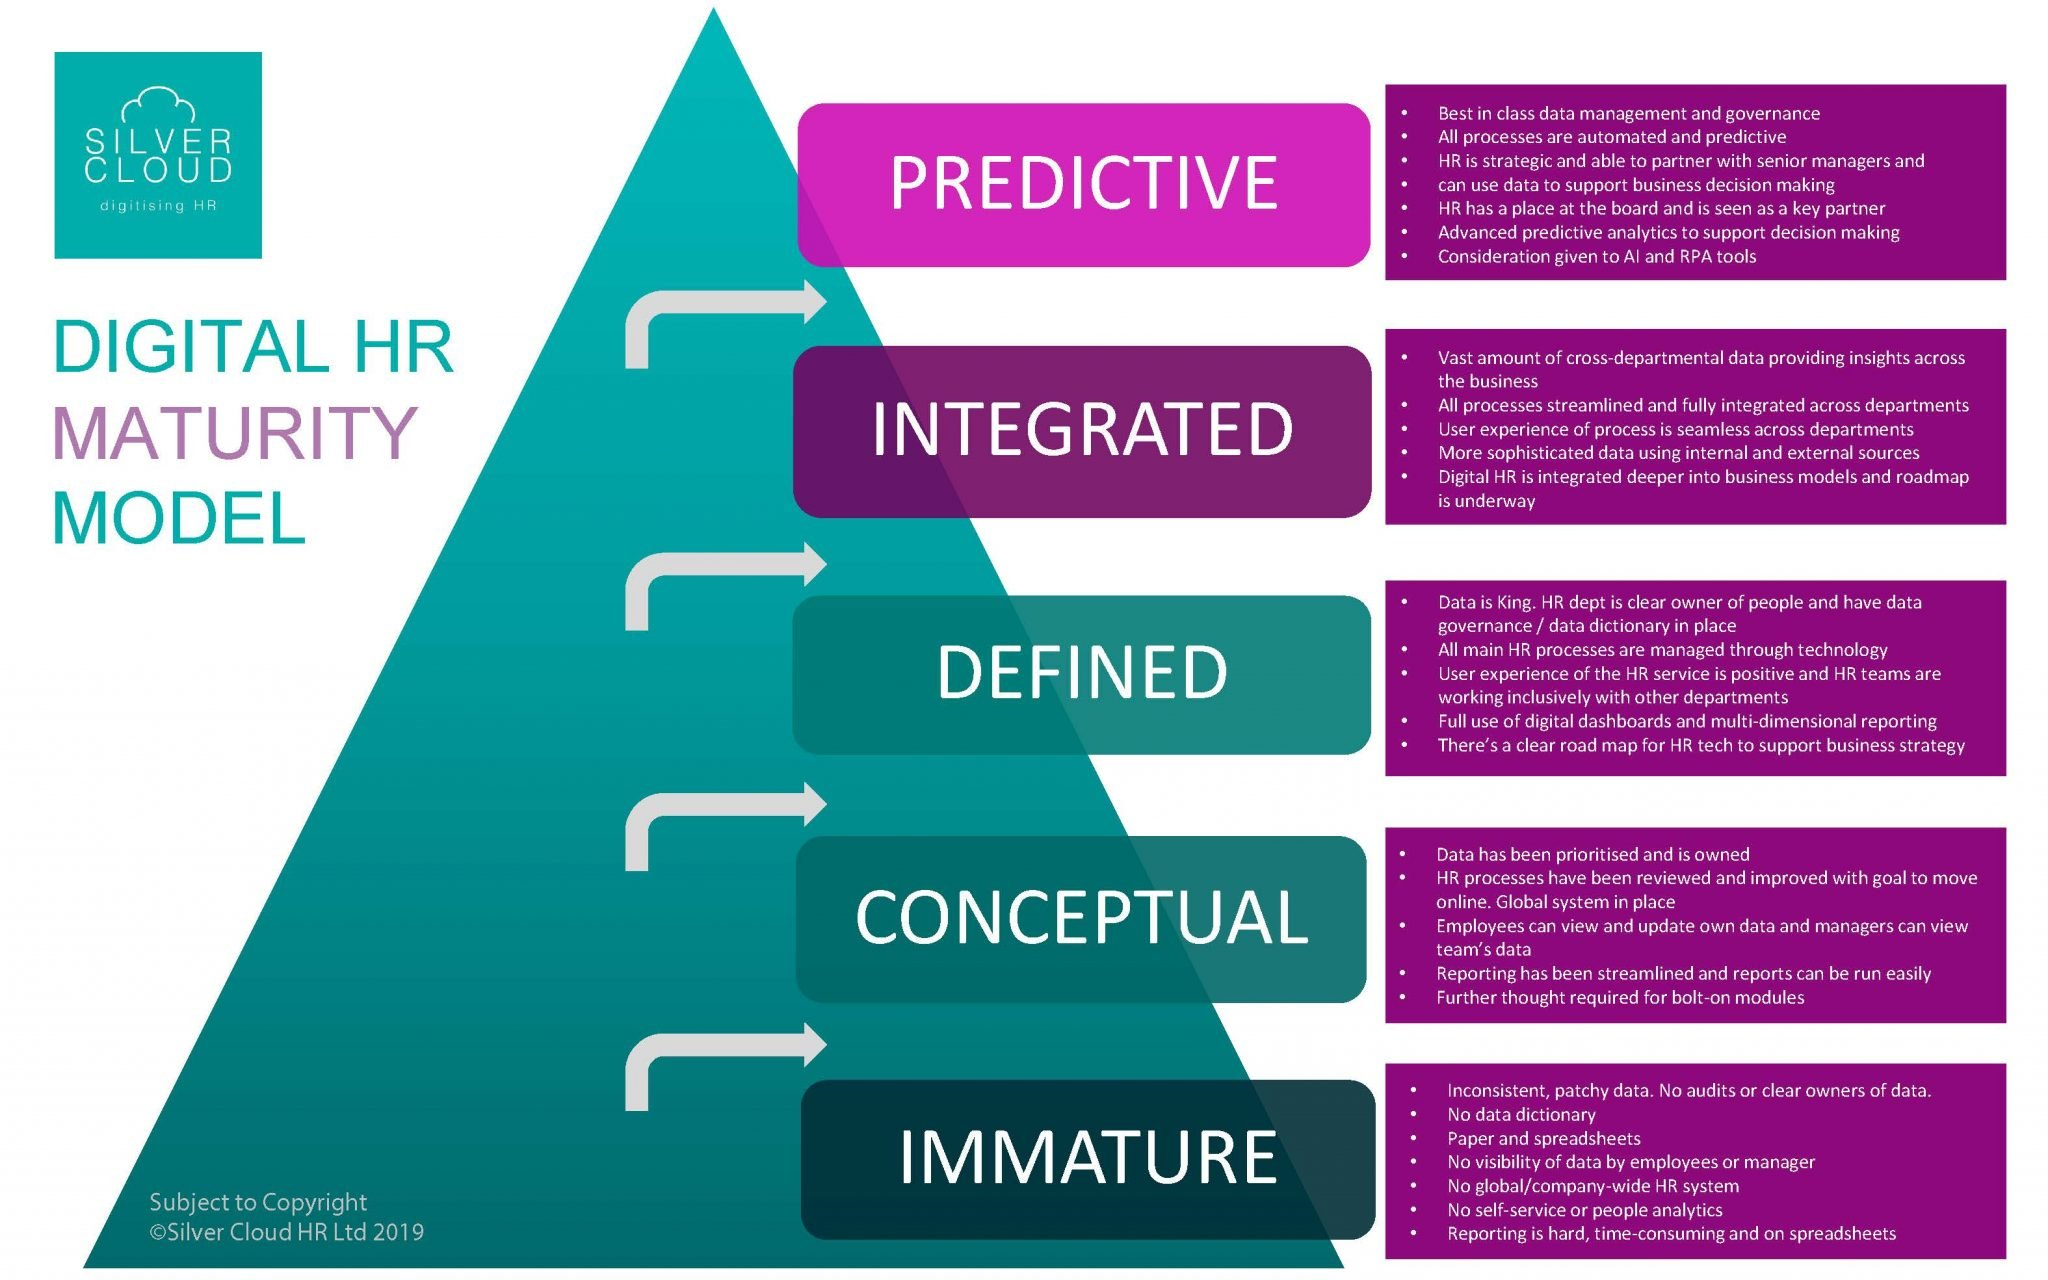 Digital HR Maturity Model_Silver Cloud HR